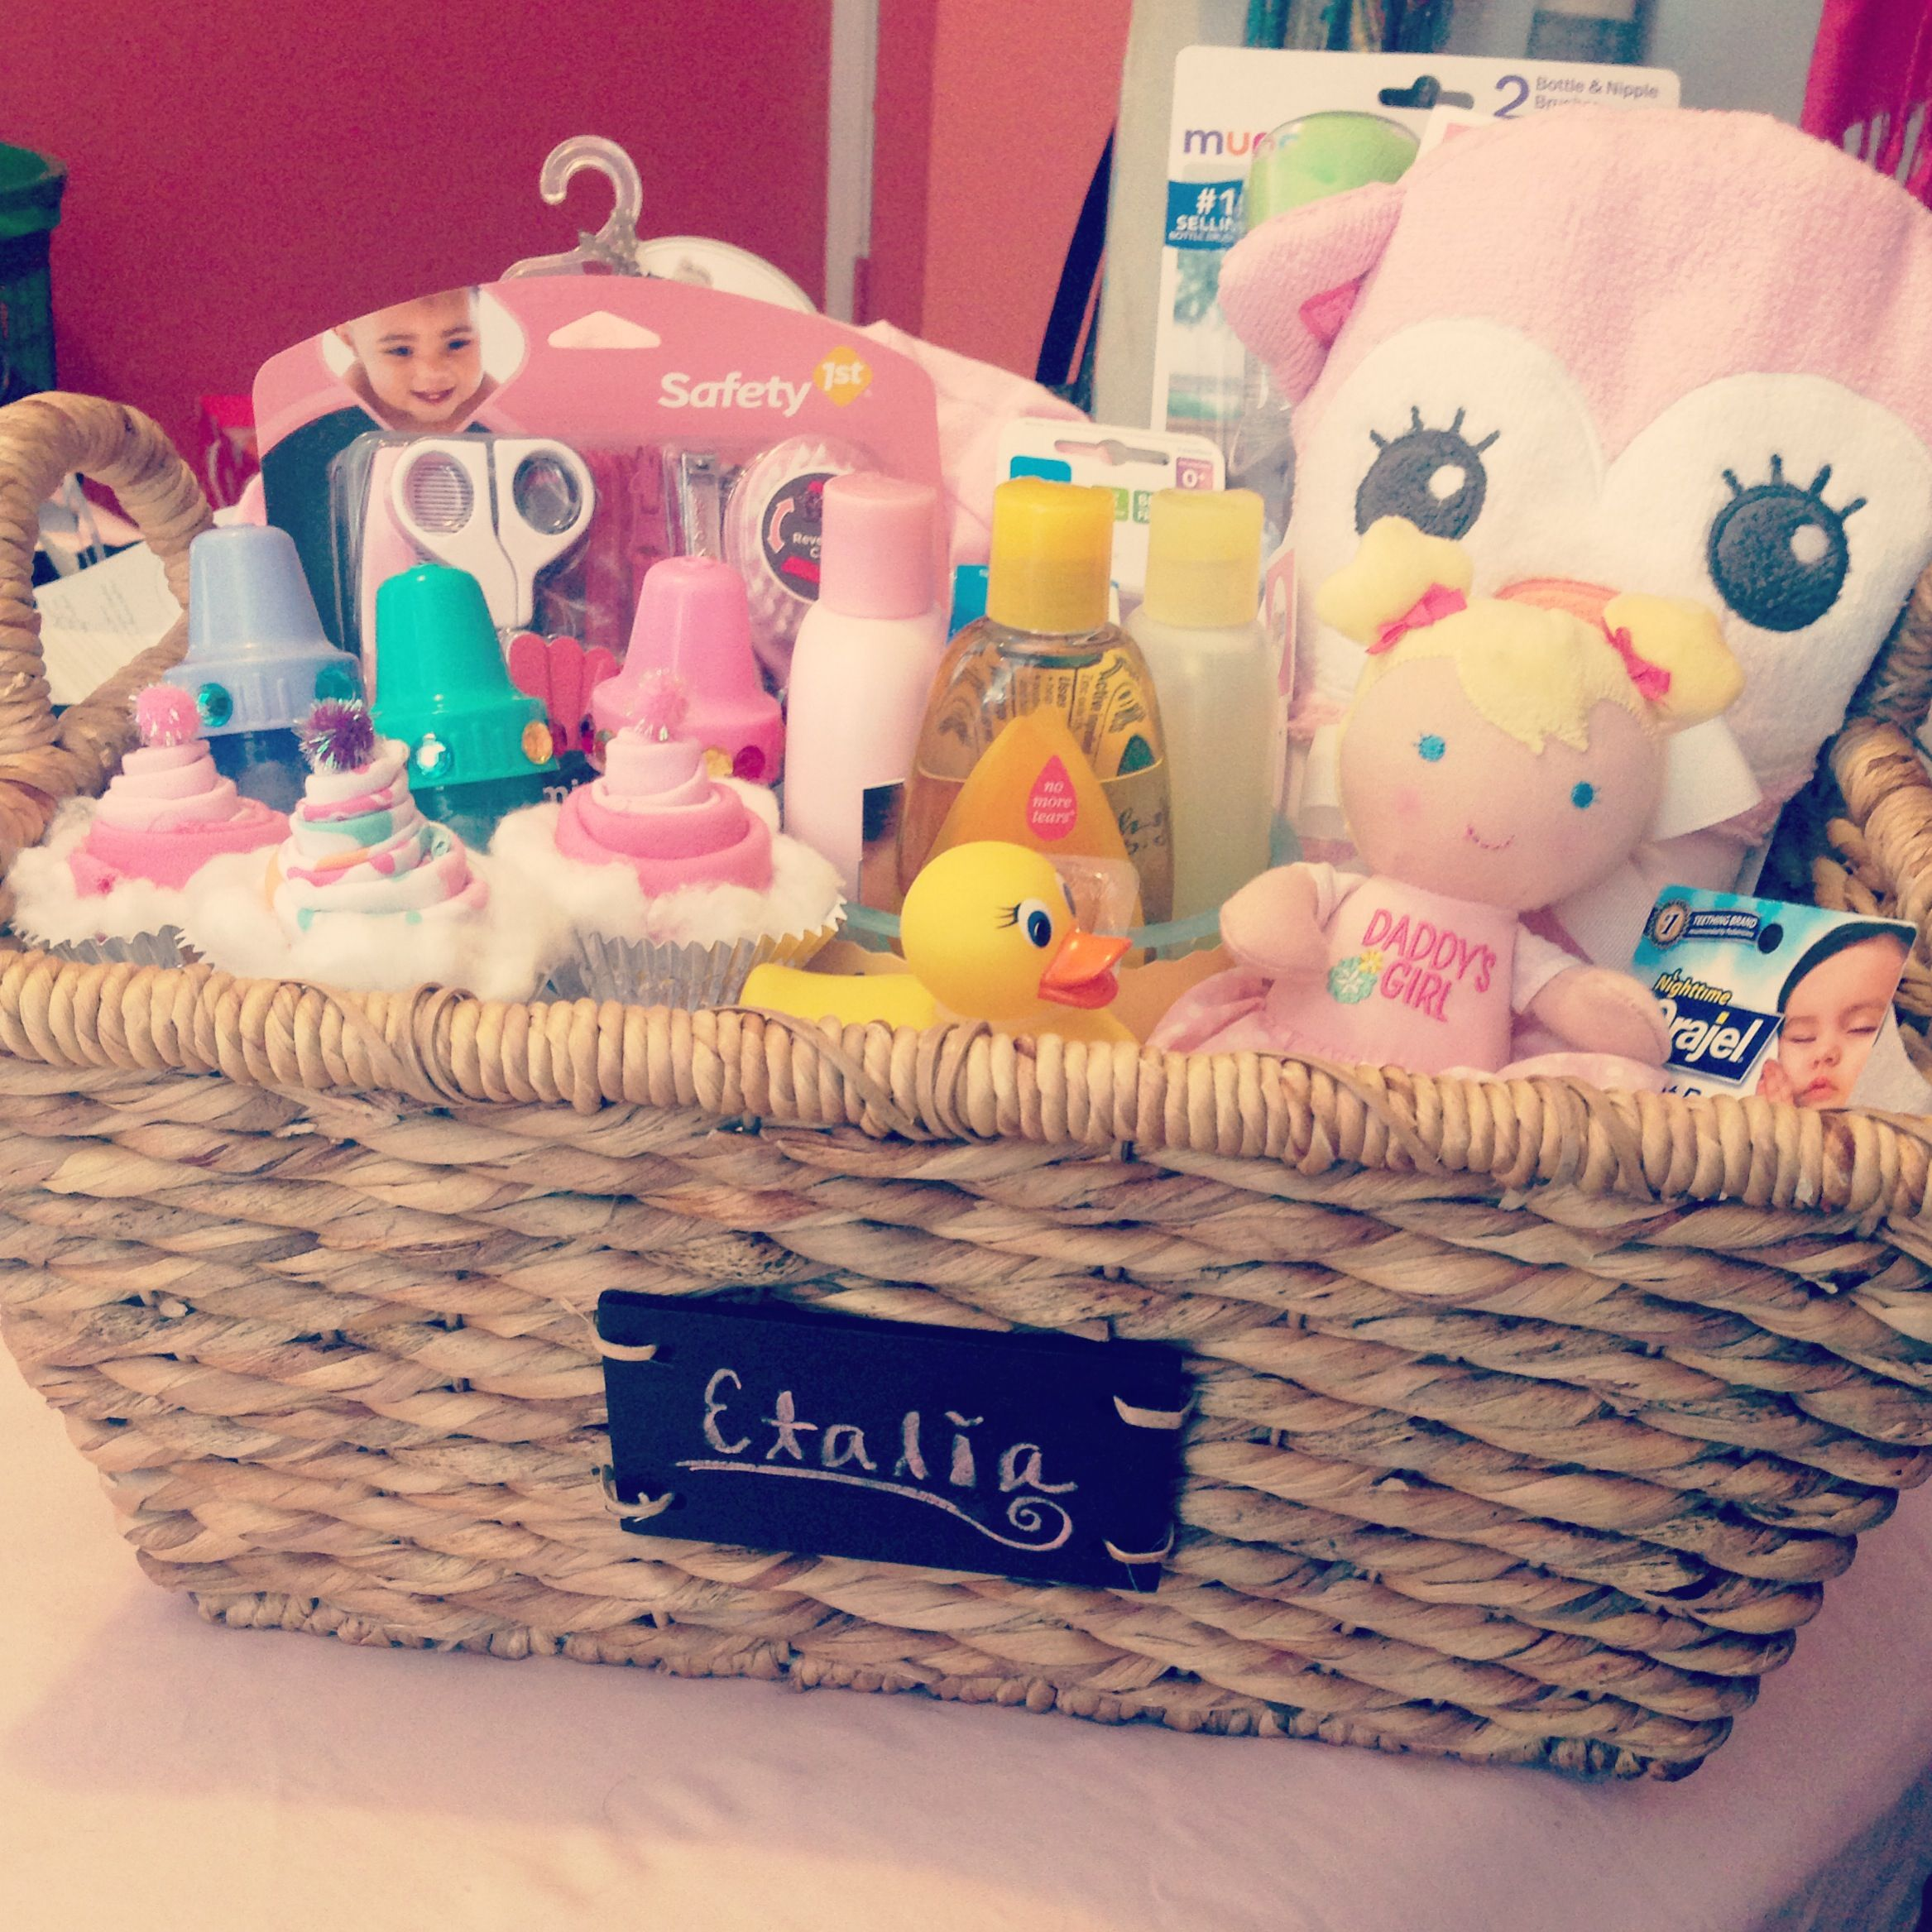 Baby Shower Basket Gift Idea For Girl  Baby Shower -8795